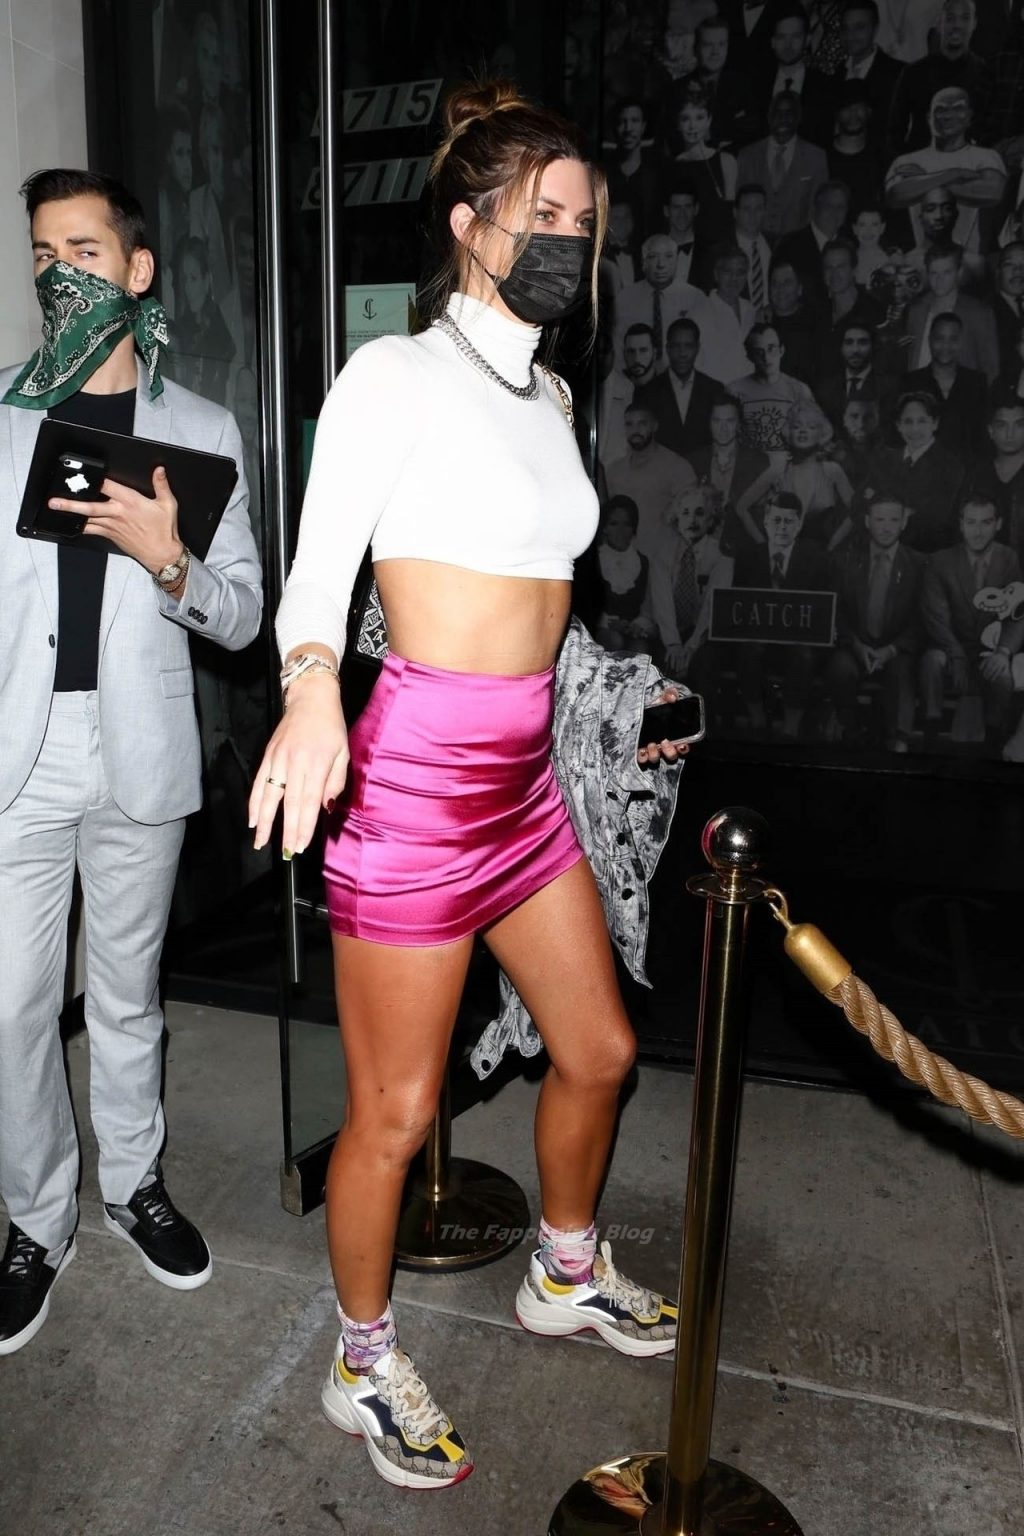 Leggy Hannah Stocking Poses for the Cameras While Arriving for Dinner (13 Photos)